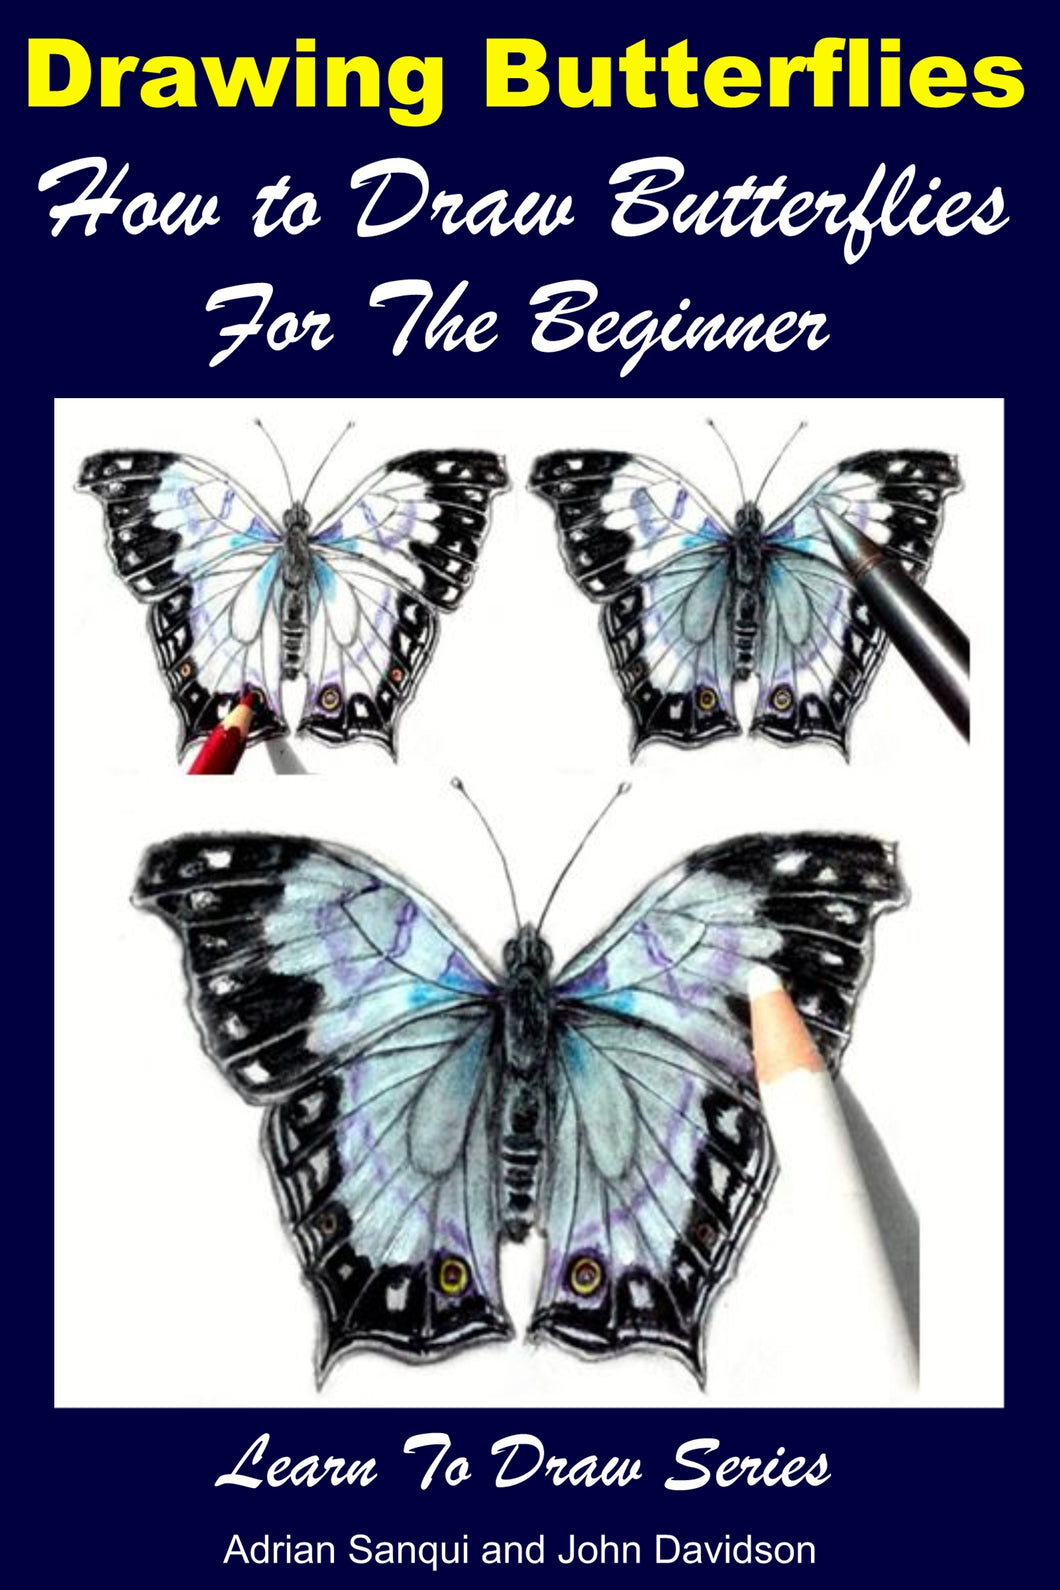 Drawing Butterflies - How to Draw Butterflies For the Beginner